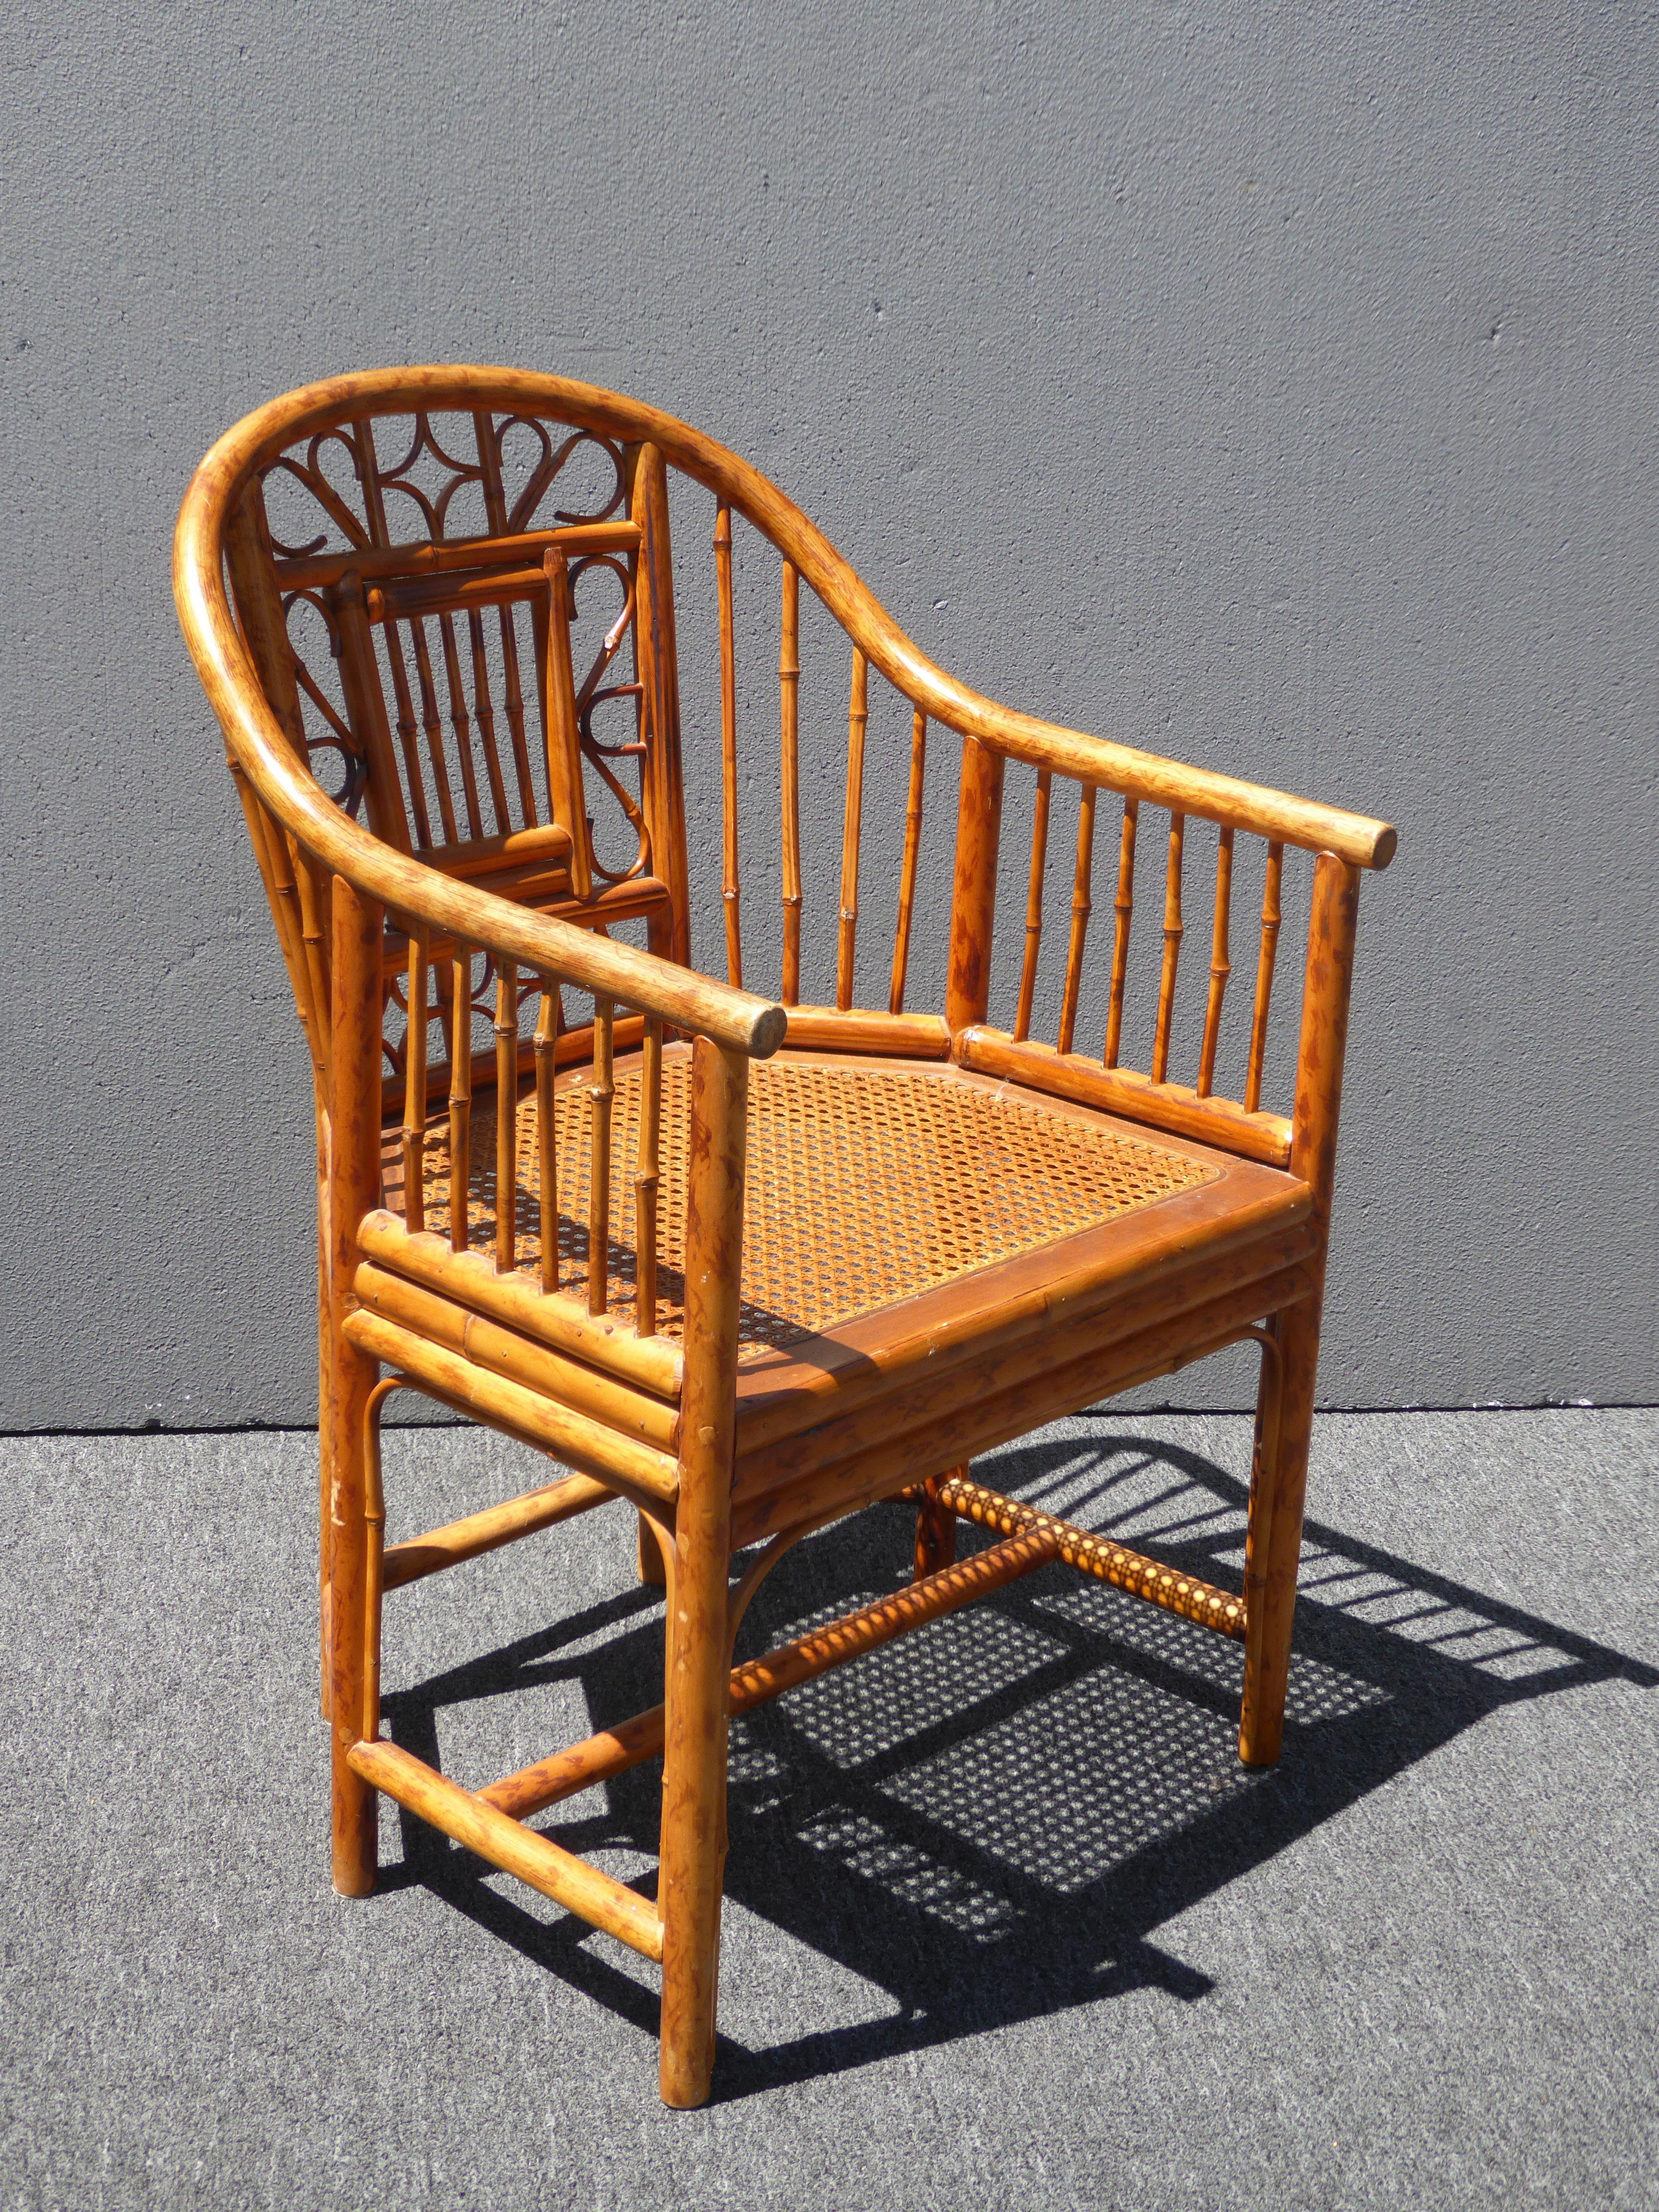 Vintage Chinoiserie Brighton Pavillion Style Rattan Bamboo U0026 Cane Arm Chair  For Sale   Image 4